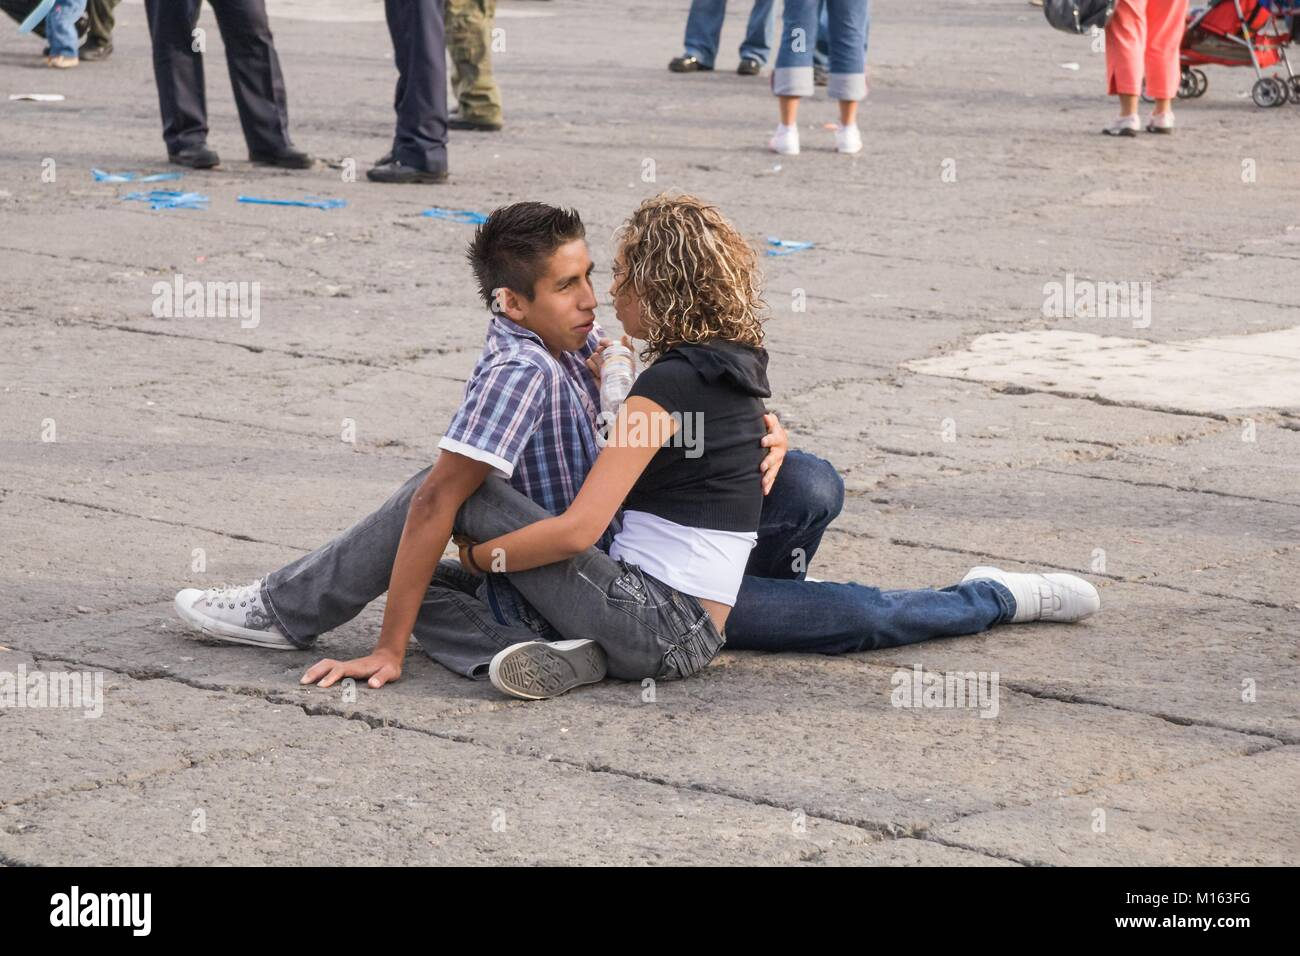 Young couple in love sitting in a public square in Mexico City. - Stock Image